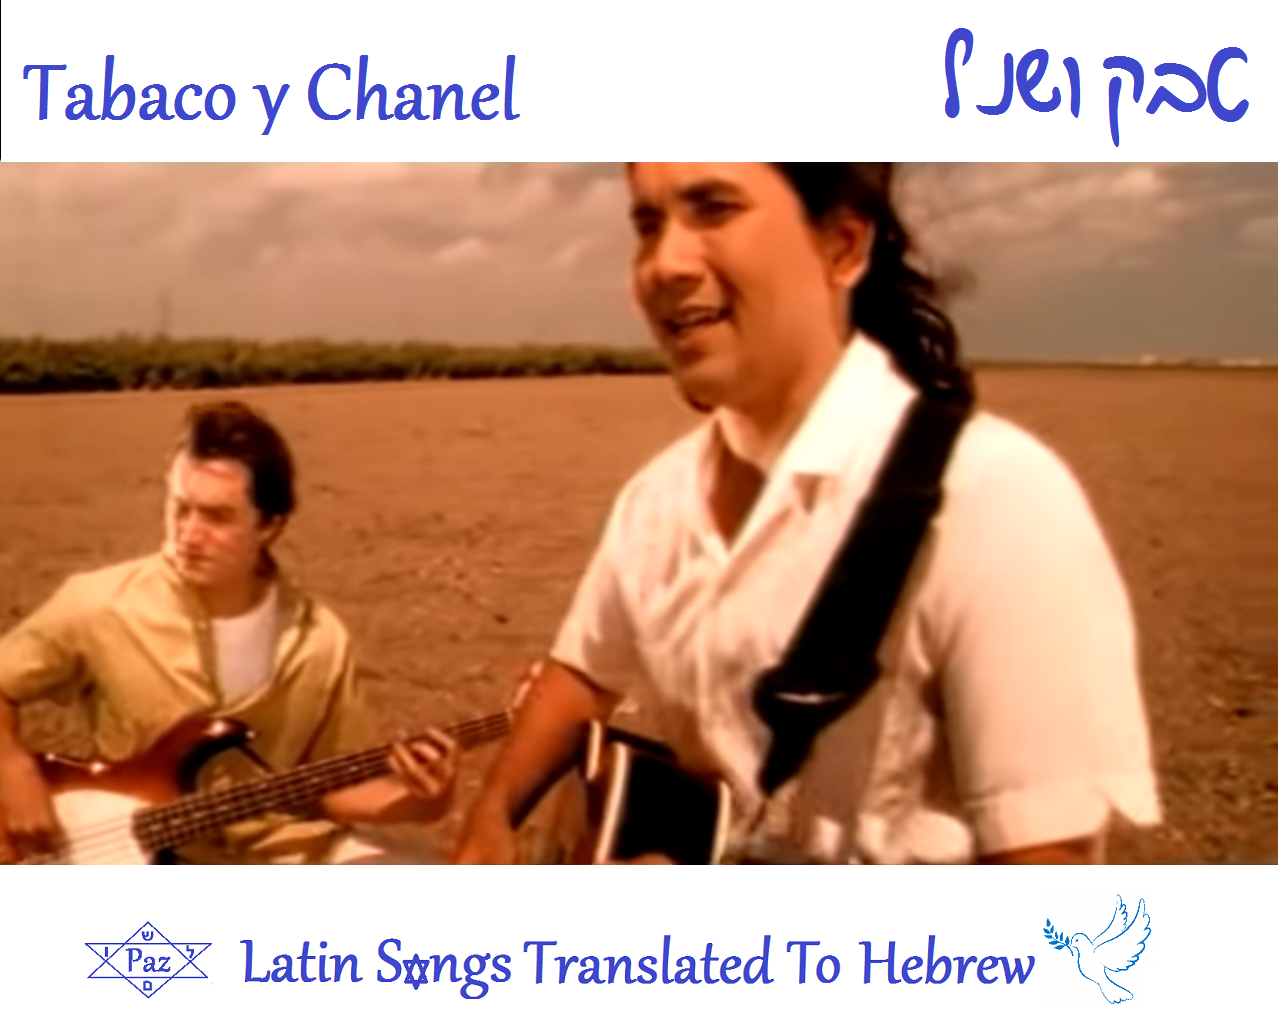 446b6f7e531 Latin Songs Translated to Hebrew  Bacilos - Tabaco y Chanel